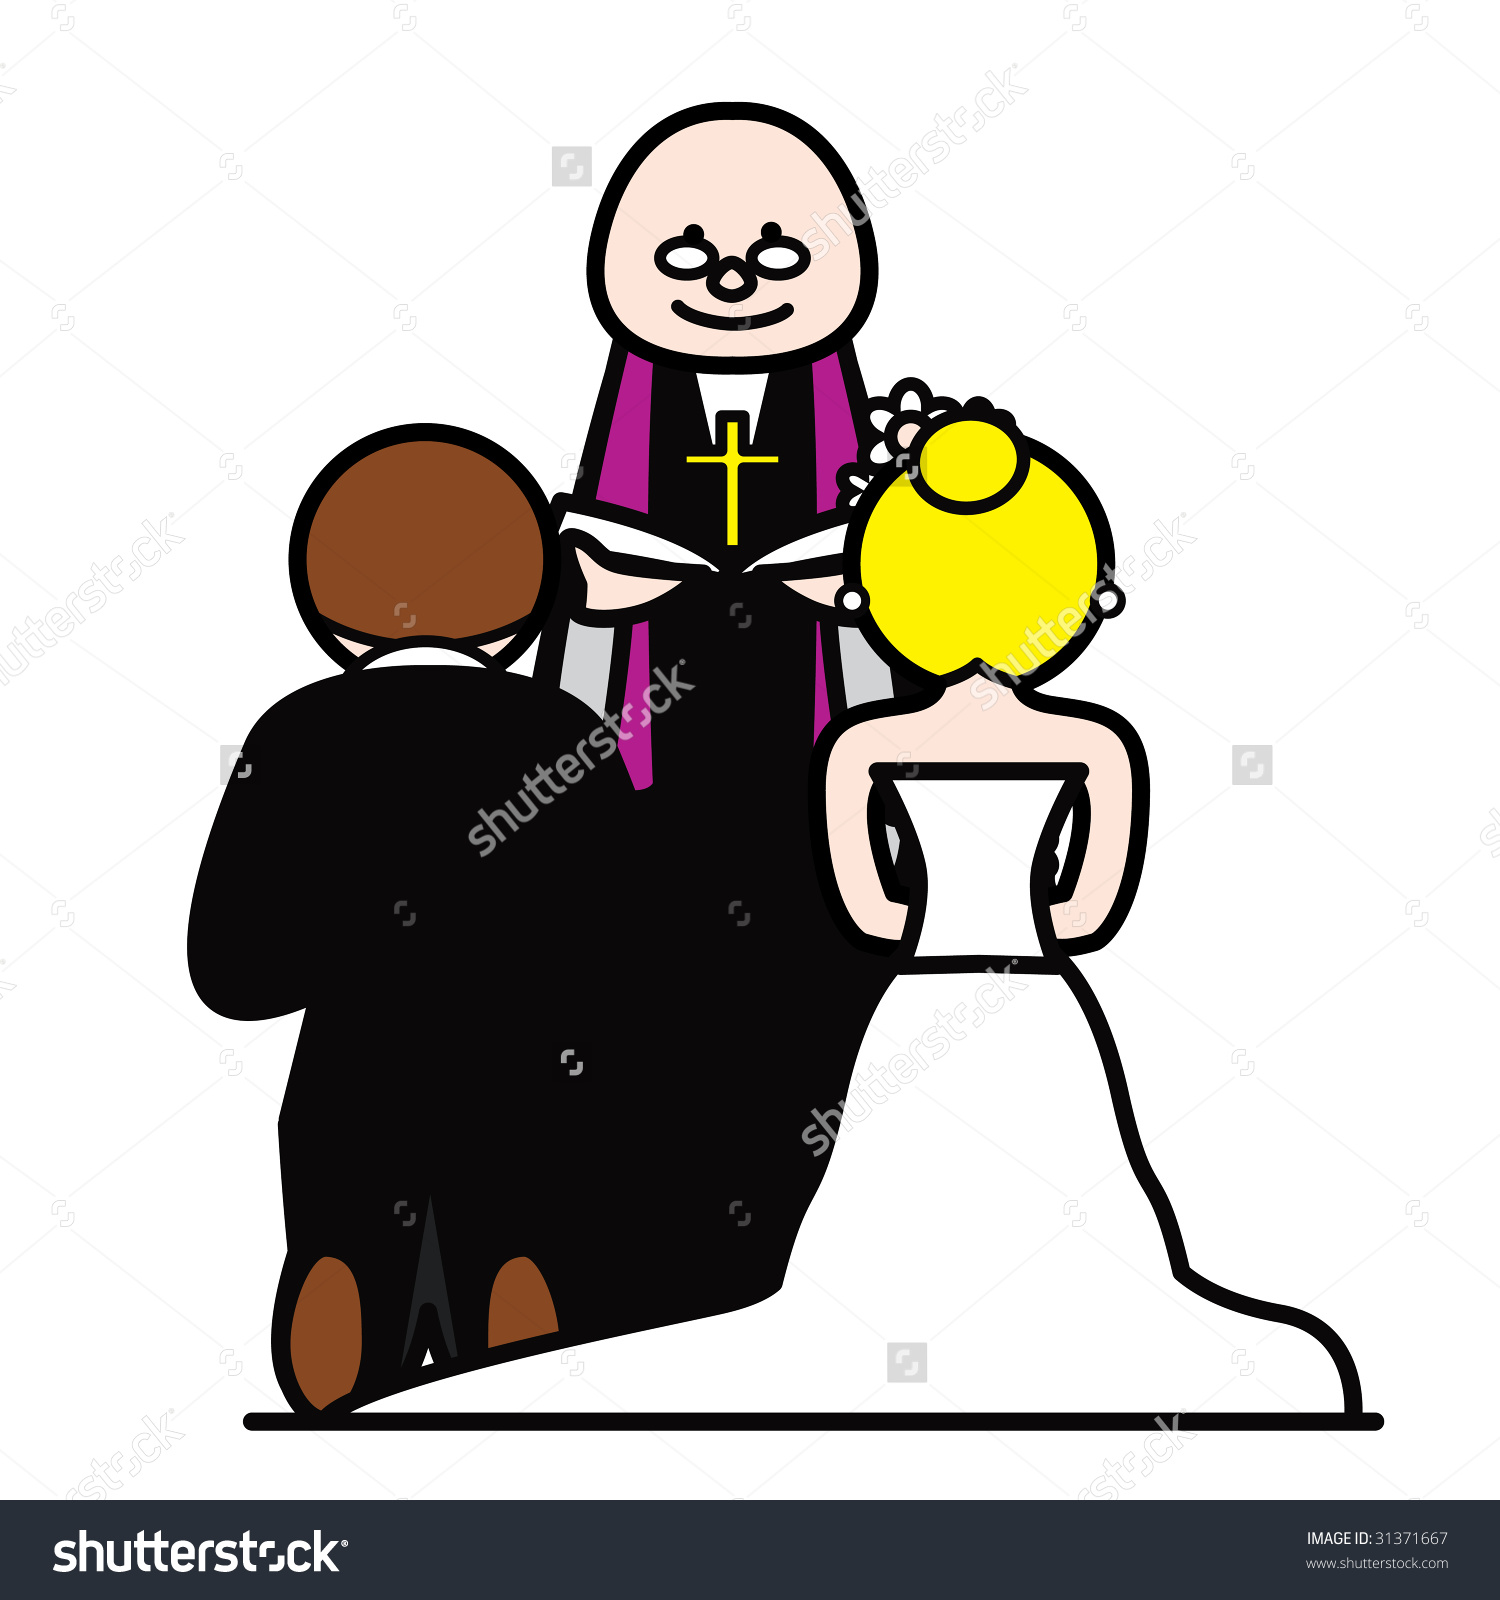 Bride And Groom With Vicar Stock Photo 31371667 : Shutterstock.